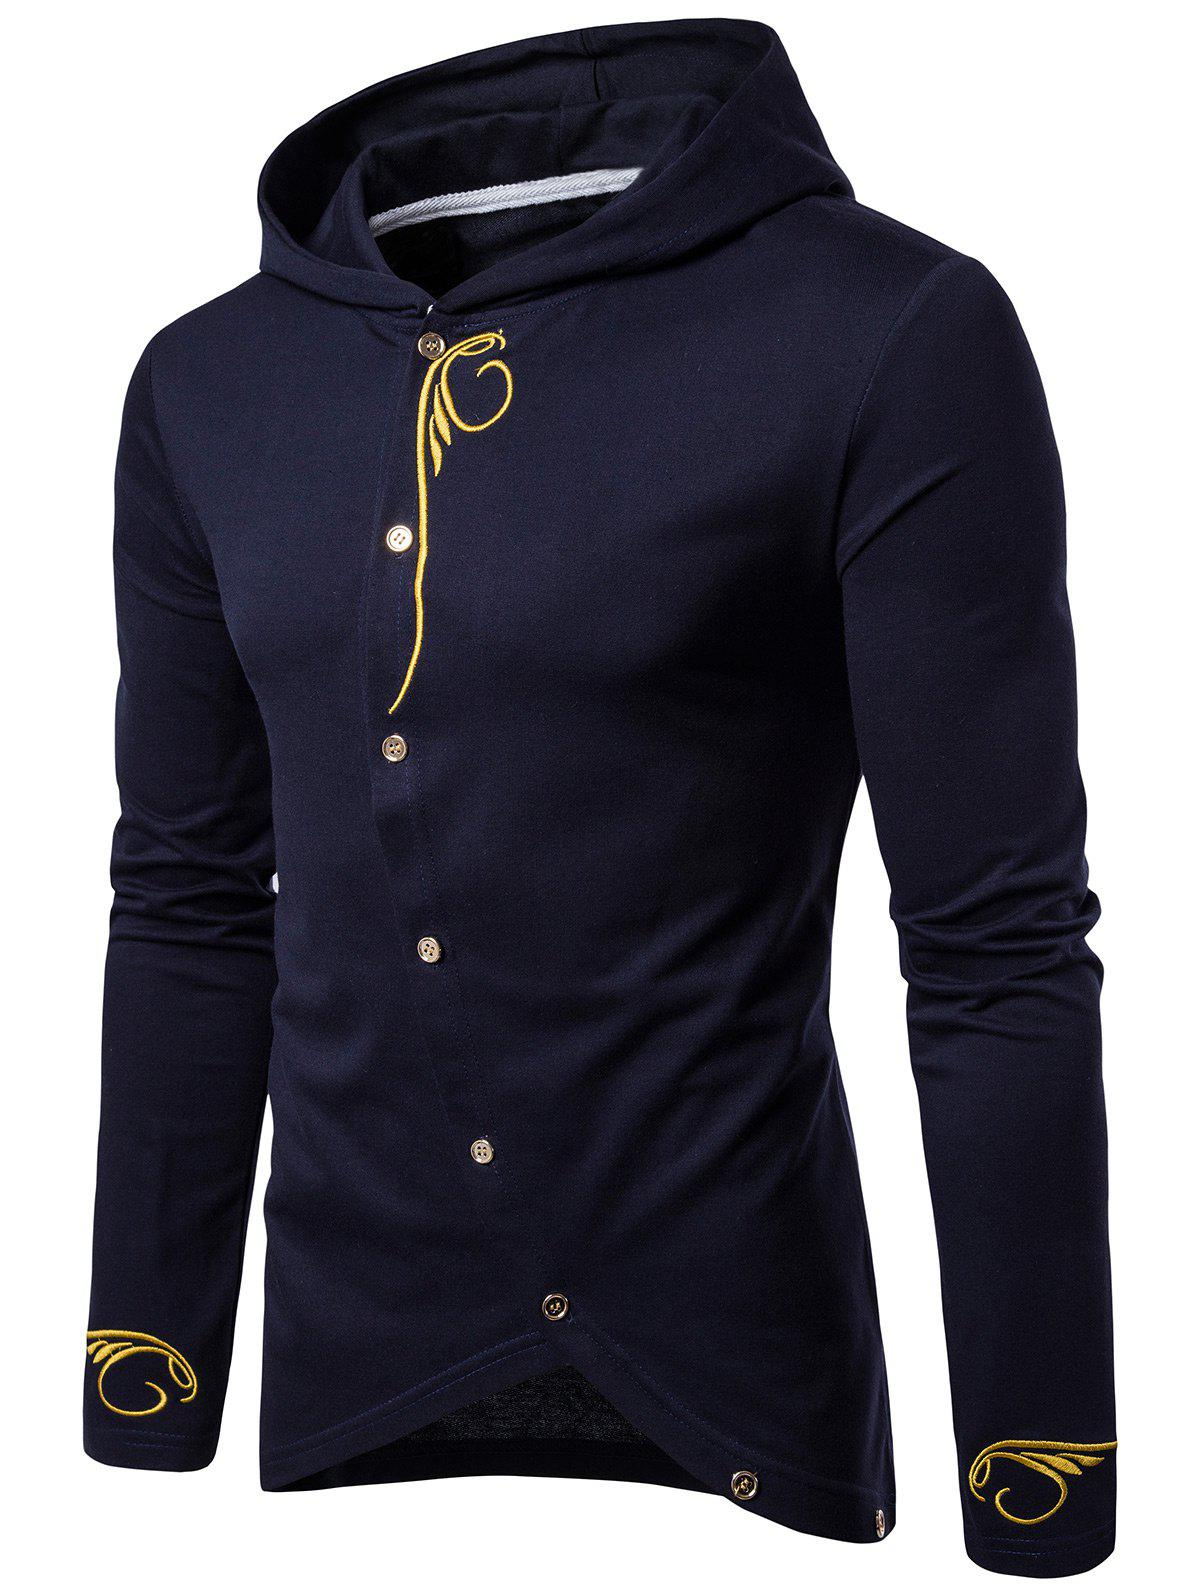 Long Sleeve Oblique Buttons Design Embroidered T-shirtMEN<br><br>Size: L; Color: CADETBLUE; Material: Cotton,Polyester; Sleeve Length: Full; Collar: Hooded; Style: Casual,Fashion; Embellishment: Embroidery; Pattern Type: Solid; Weight: 0.3280kg; Package Contents: 1 x T-shirt;